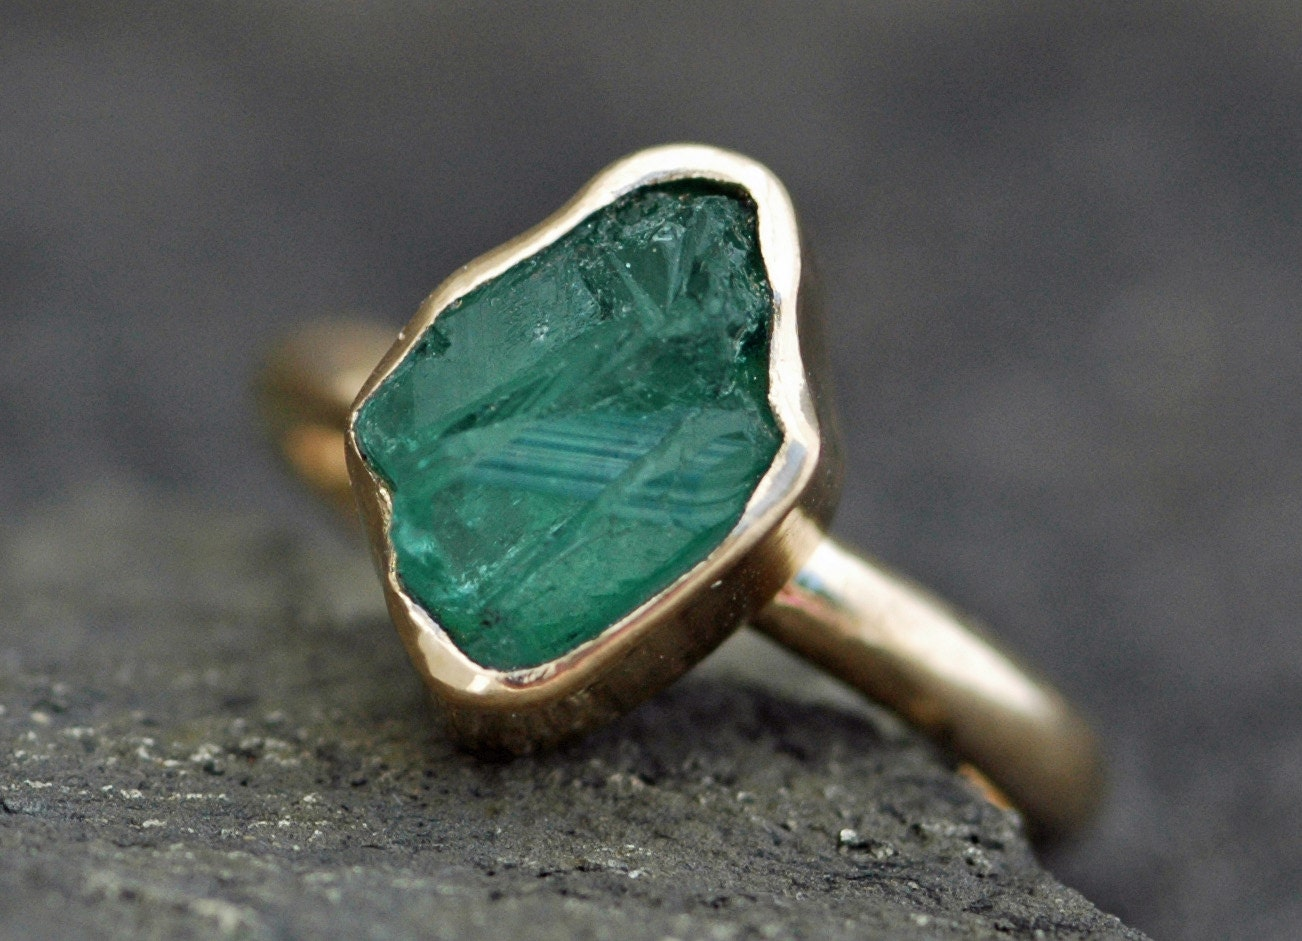 Rough Emerald In 18k Gold Ring Custom Made. 1ct Diamond Engagement Rings. Loop Rings. Unique Nature Wedding Rings. Translation Rings. Military Rings. Year Engagement Rings. Eragon Wedding Rings. Half Bezel Engagement Rings